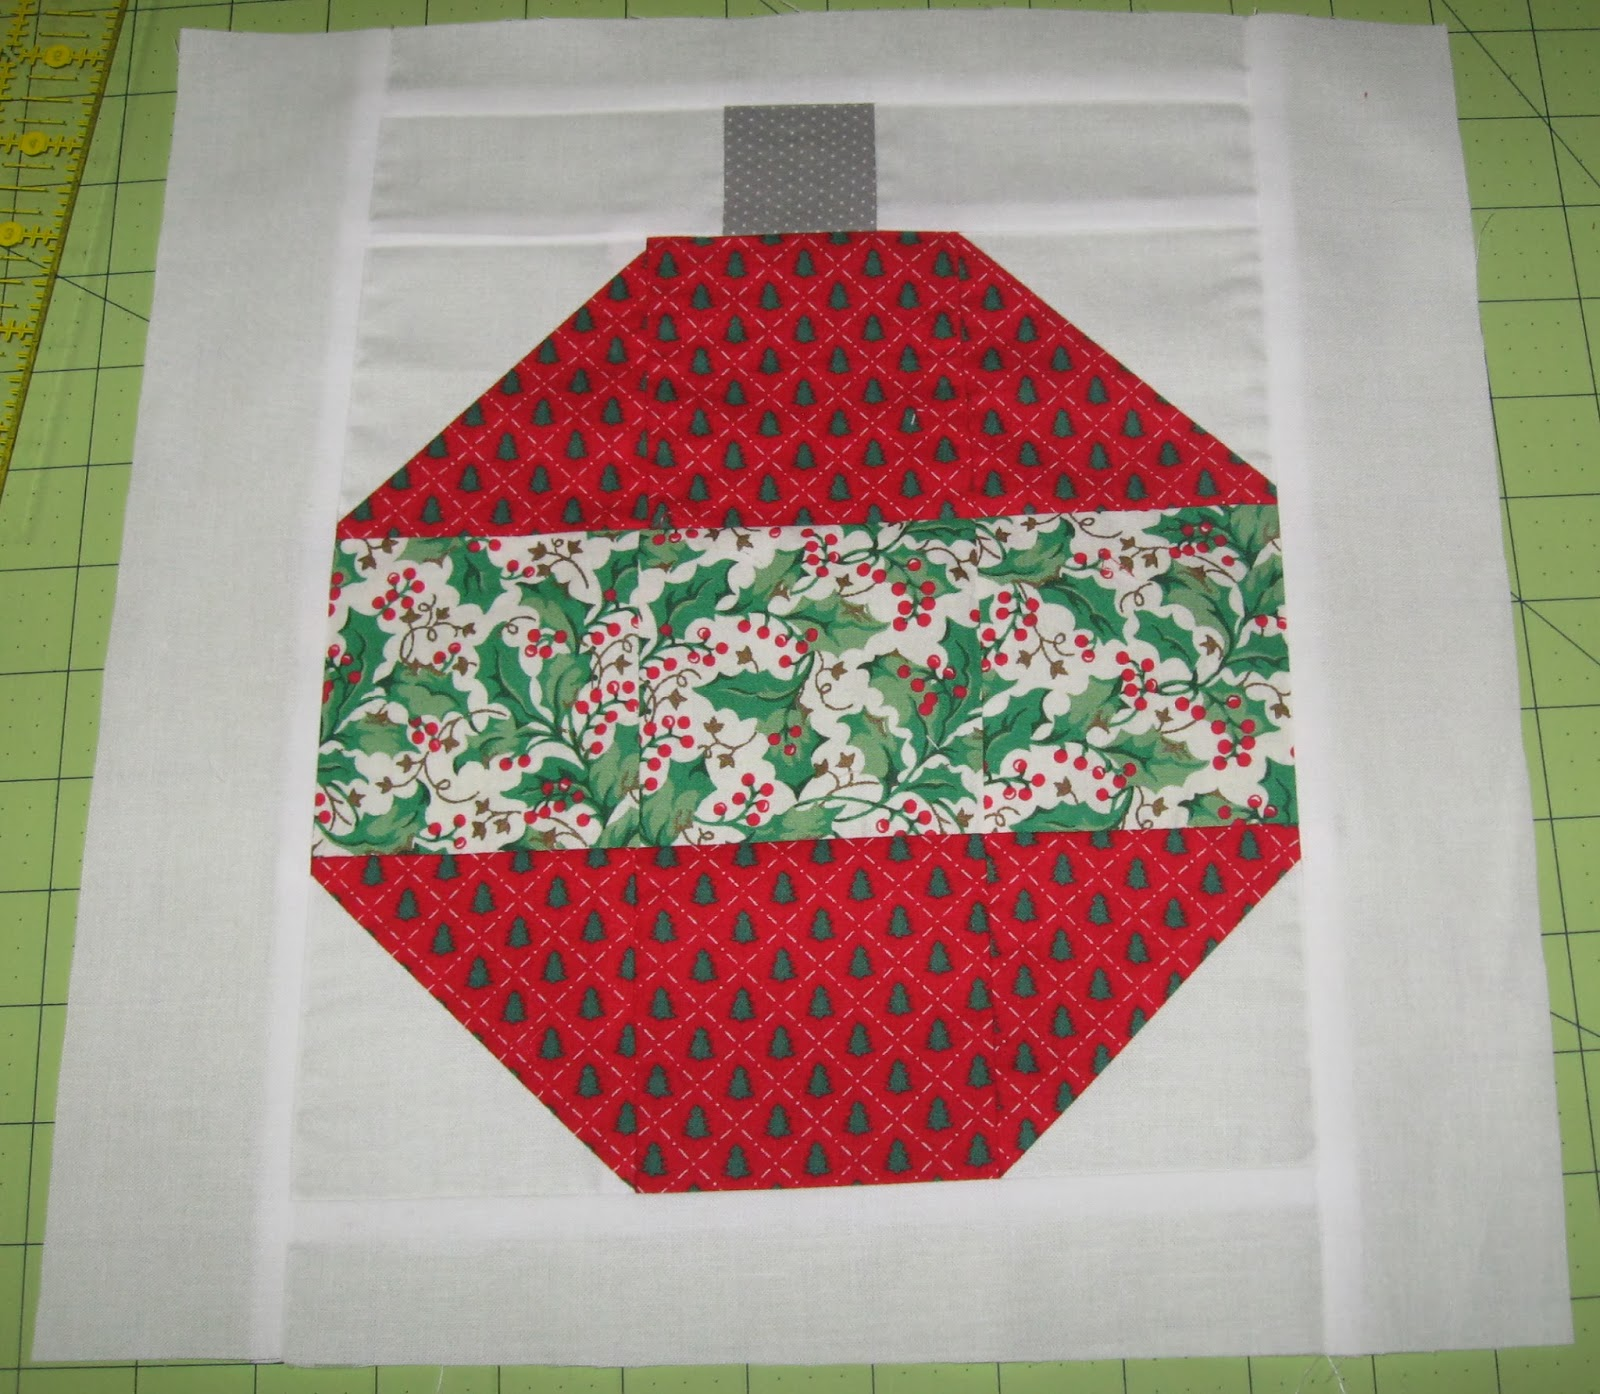 Quilt Block Patterns Christmas : December 2013 Block of the Month: Christmas Ornament